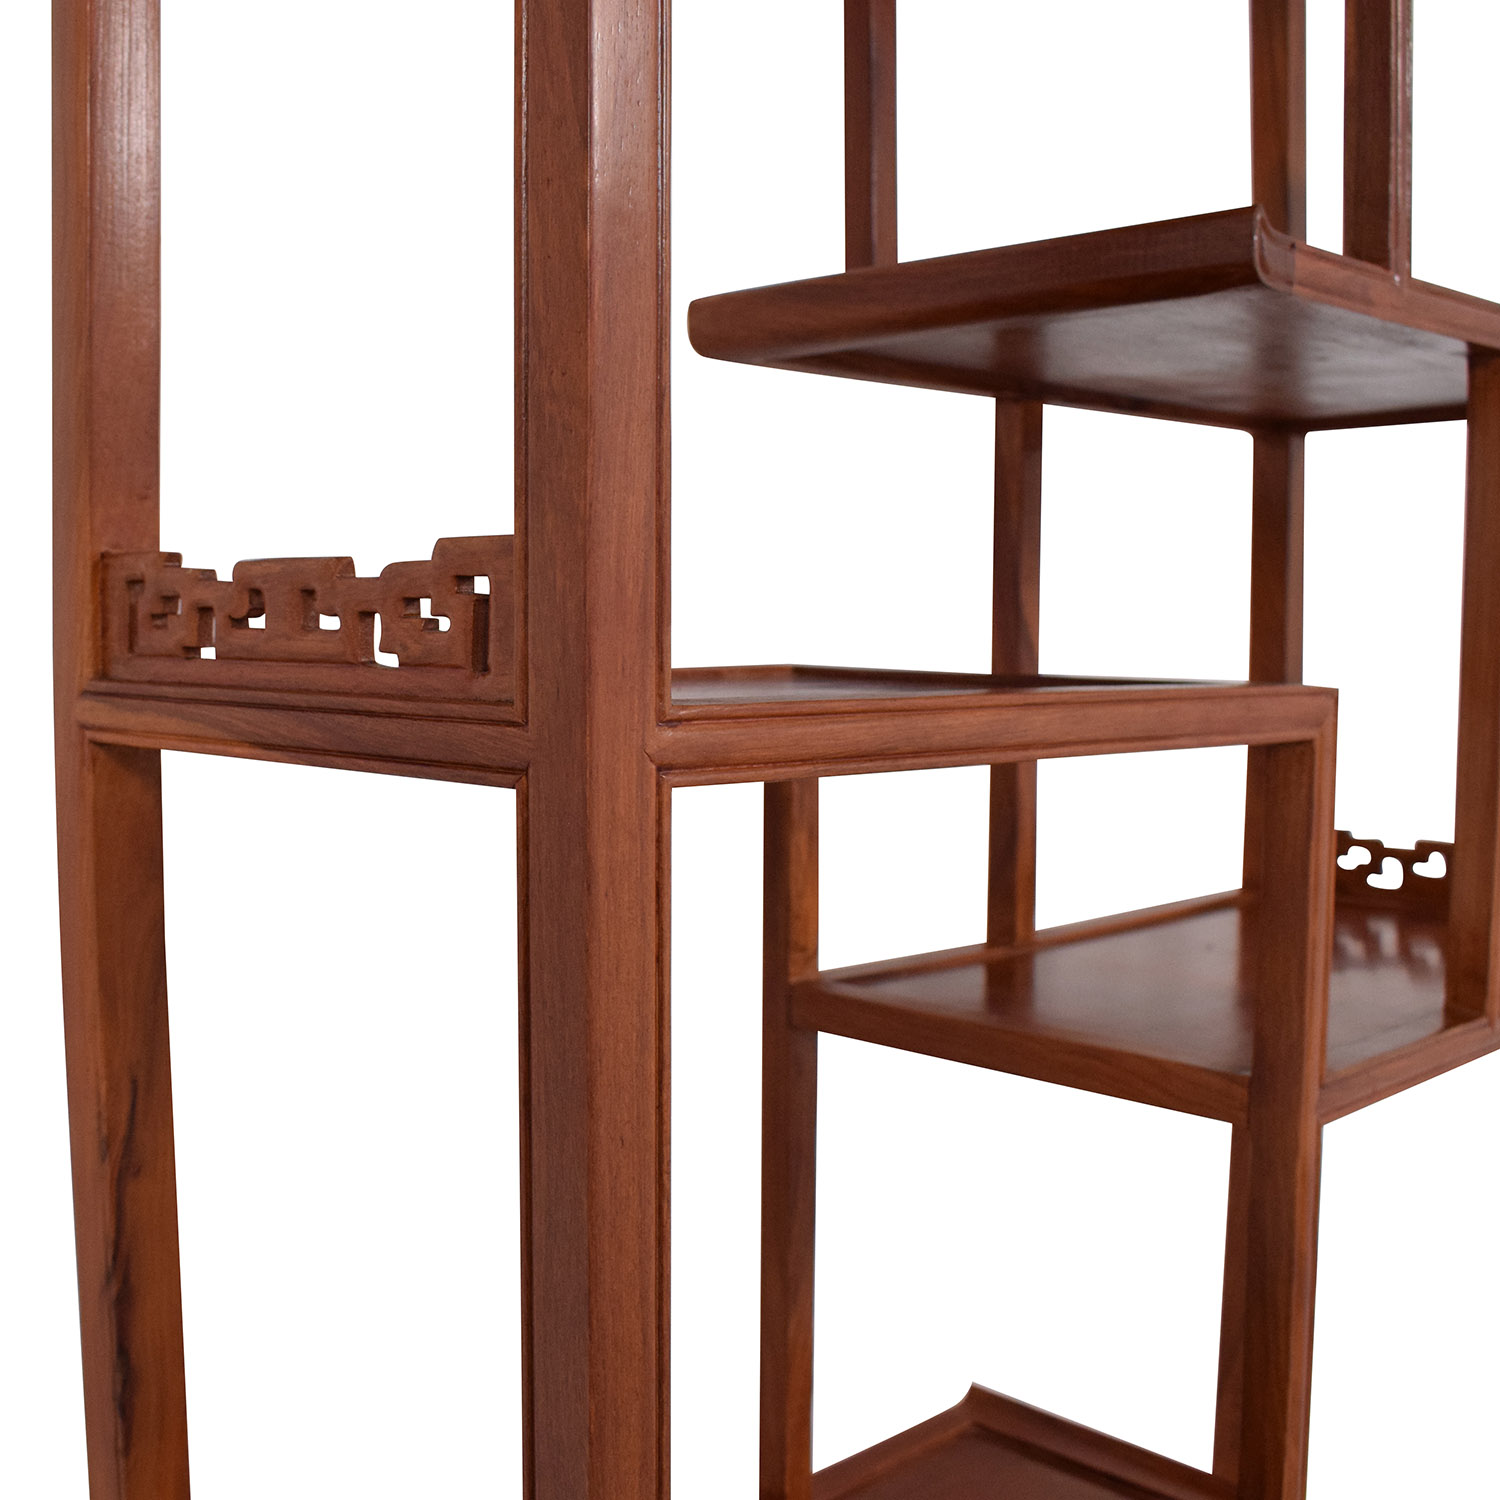 Carved Modular Bookcase dimensions